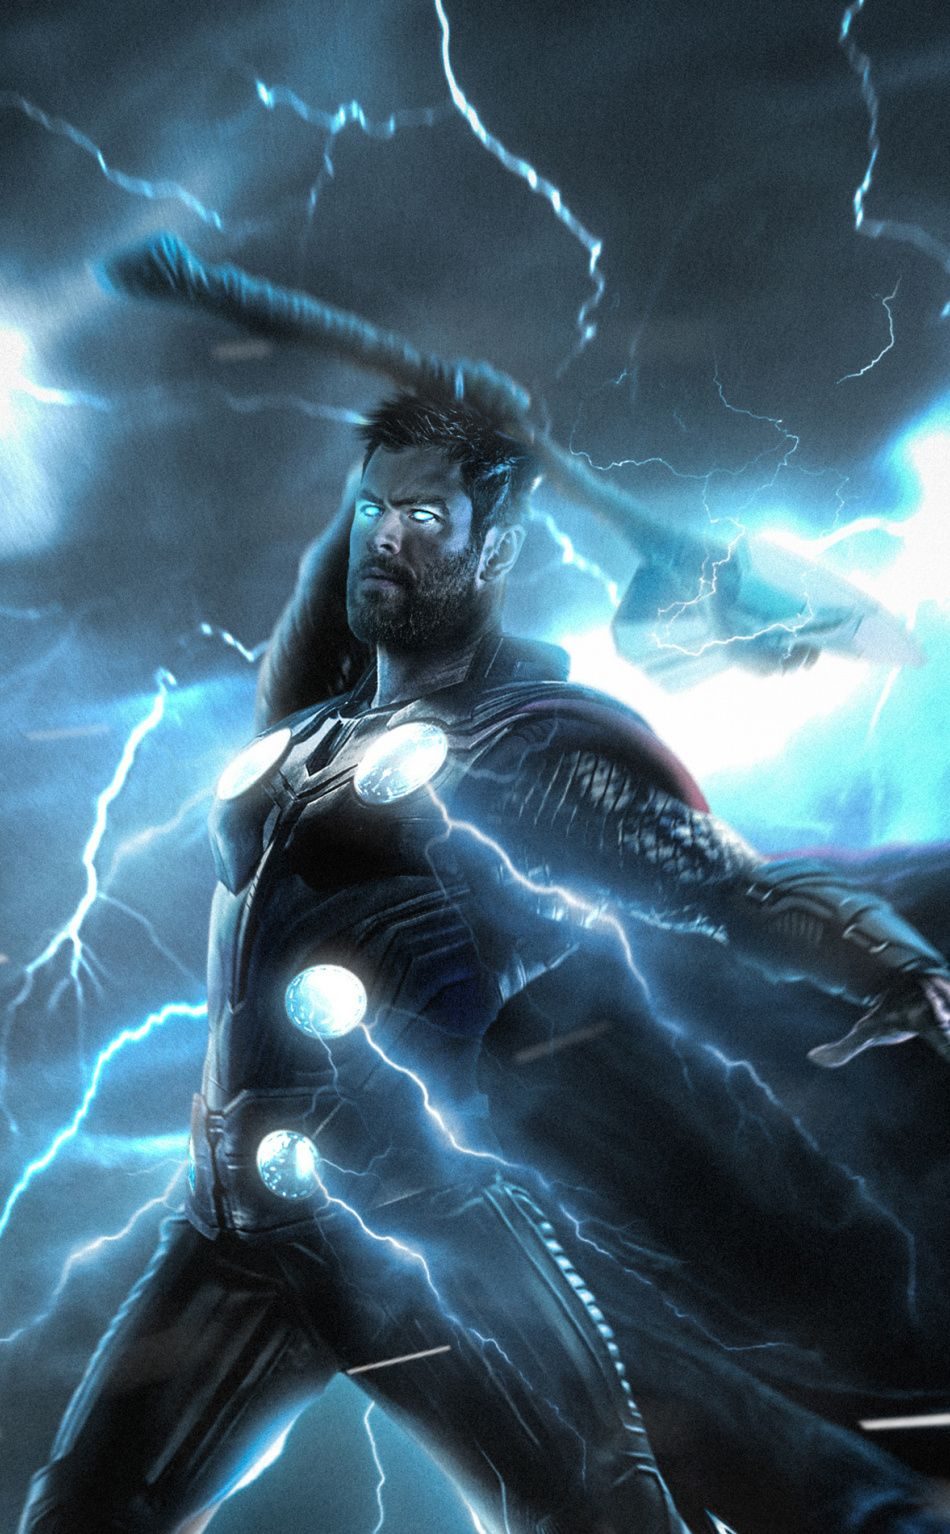 Bring Meeee Thanoossssss Thor Lightning Strike Superhero 950x1534 Wallpaper Marvel Thor Thor Wallpaper Marvel Superheroes